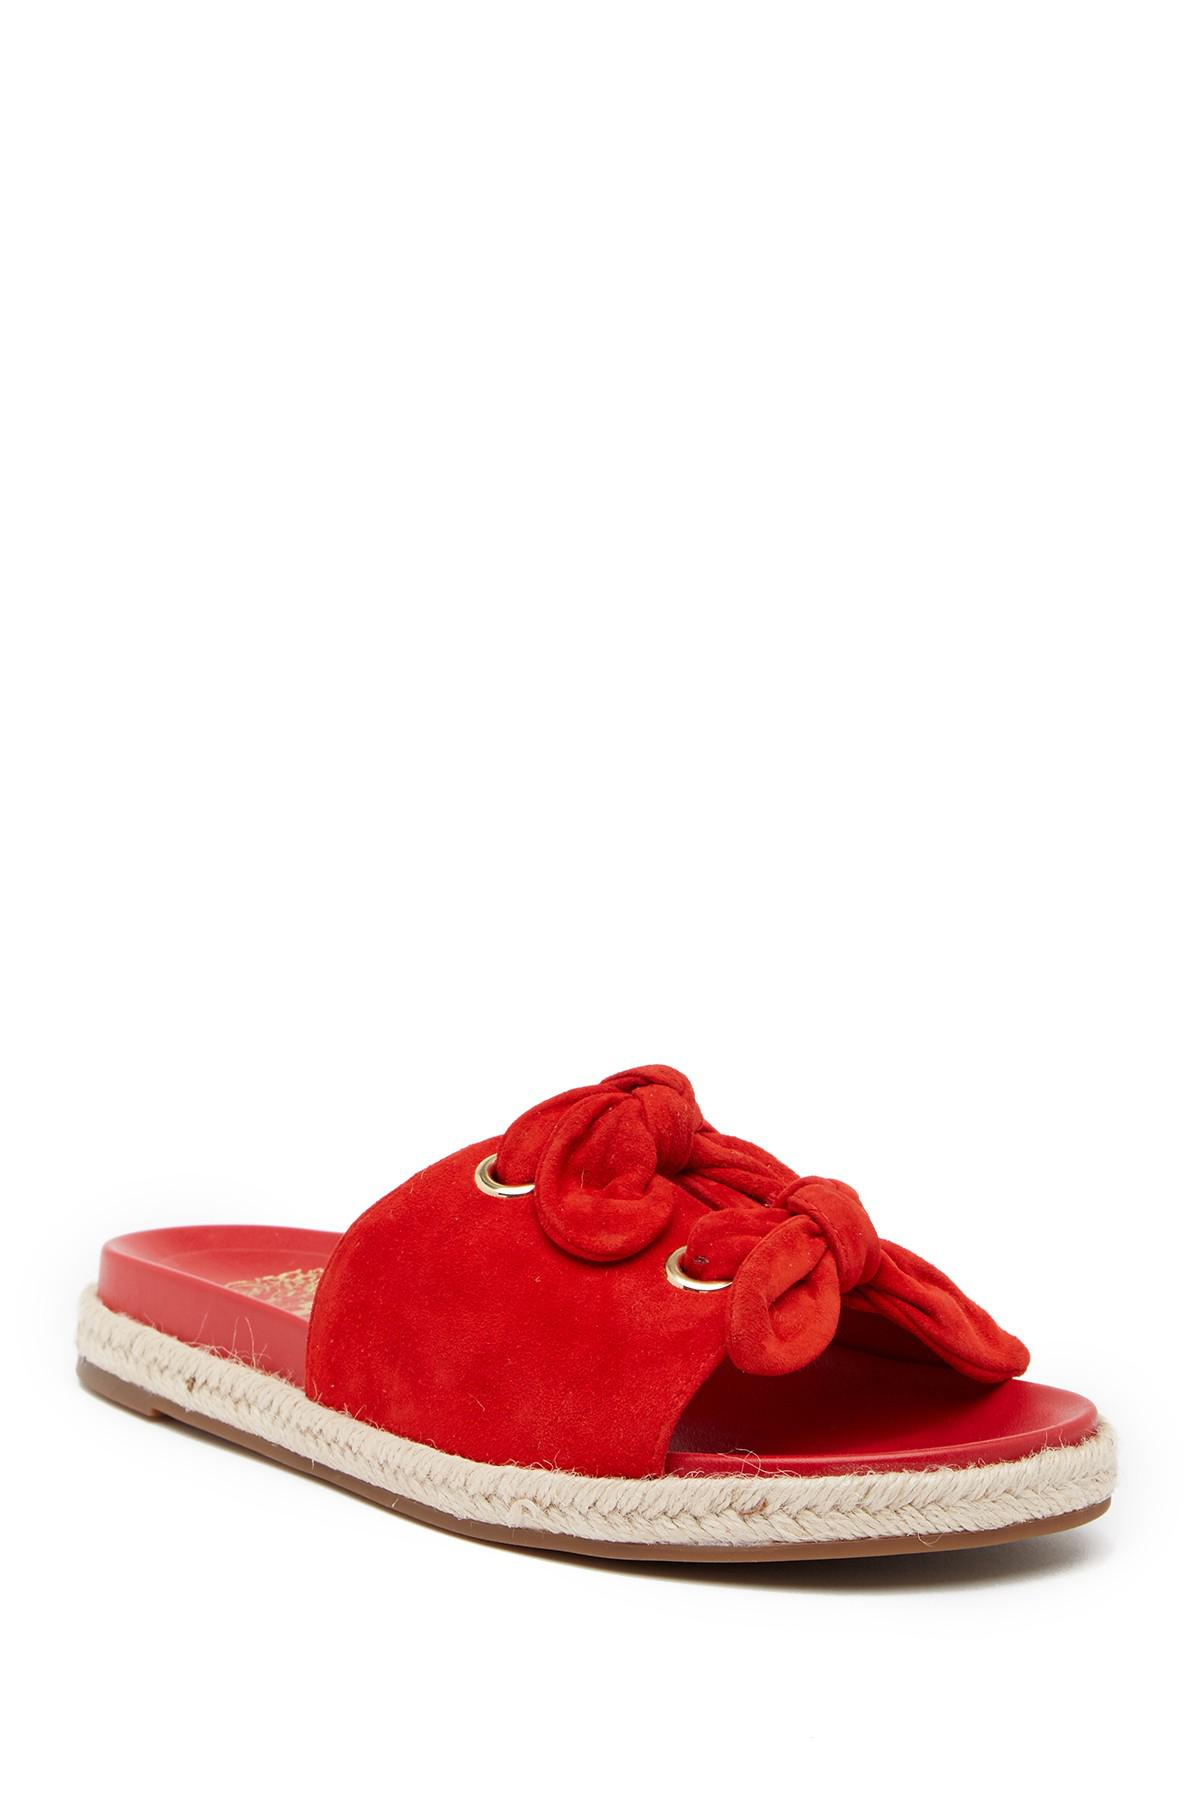 124ff3b53a6 Lyst - Vince Camuto Jazzan Tied Suede Slide Sandal in Red